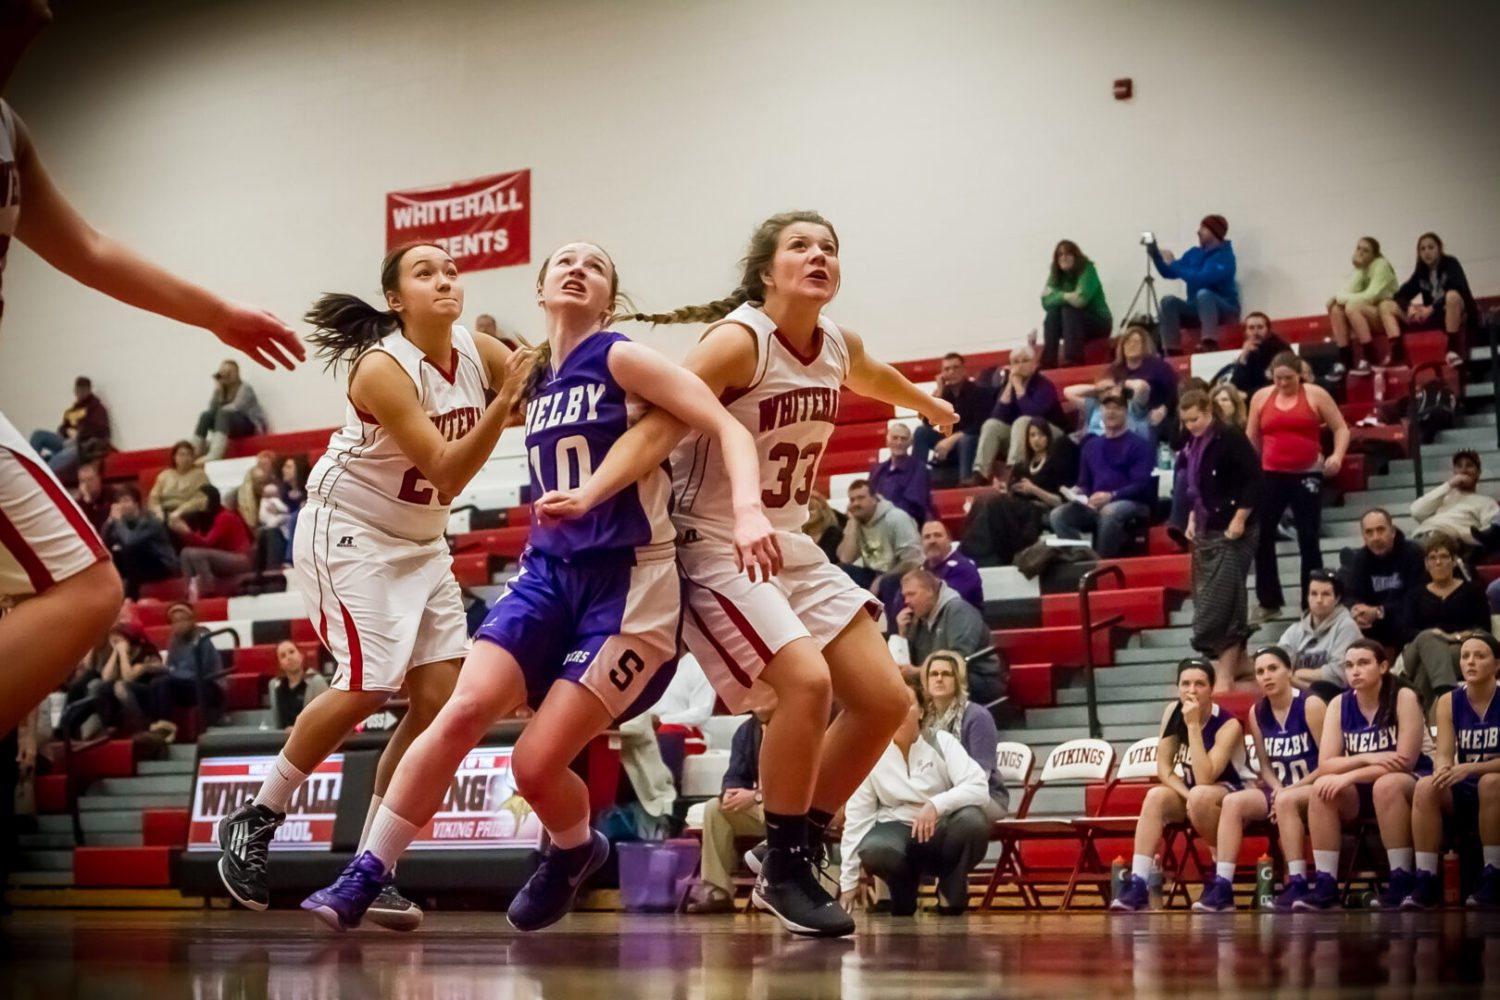 Shelby girls wake up in the second quarter, cruise to a 60-52 win over Whitehall